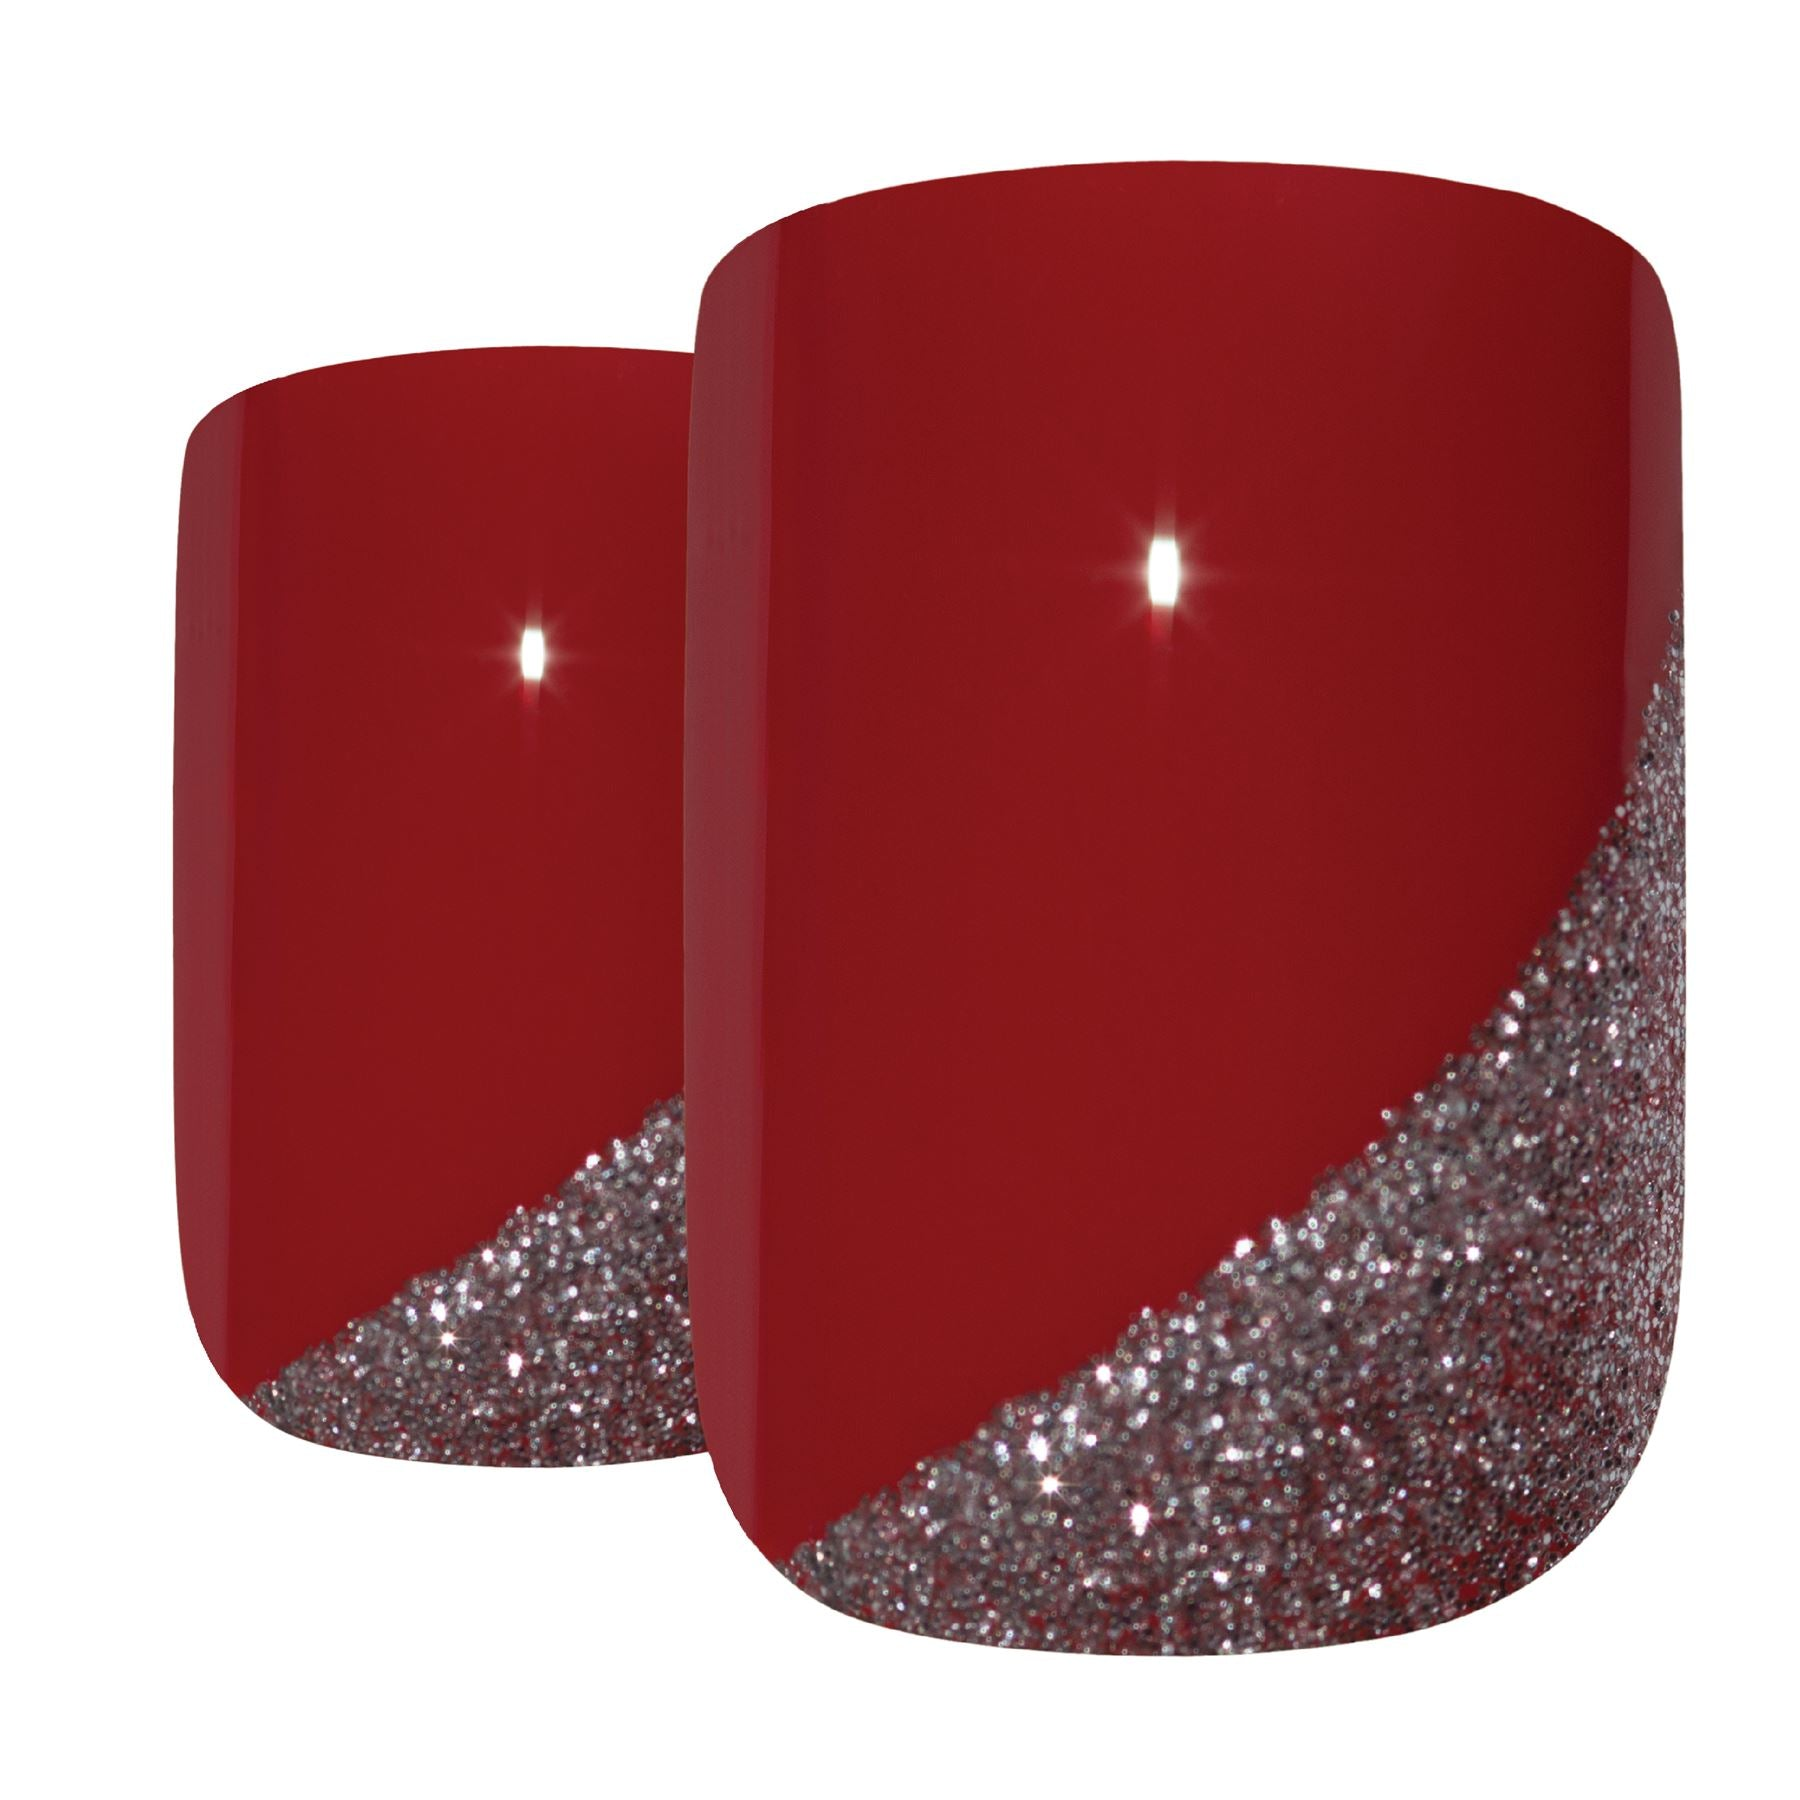 False Nails by Bling Art Red Glitter French Squoval 24 Fake Medium Acrylic Tips, Nail Care by Bling Art